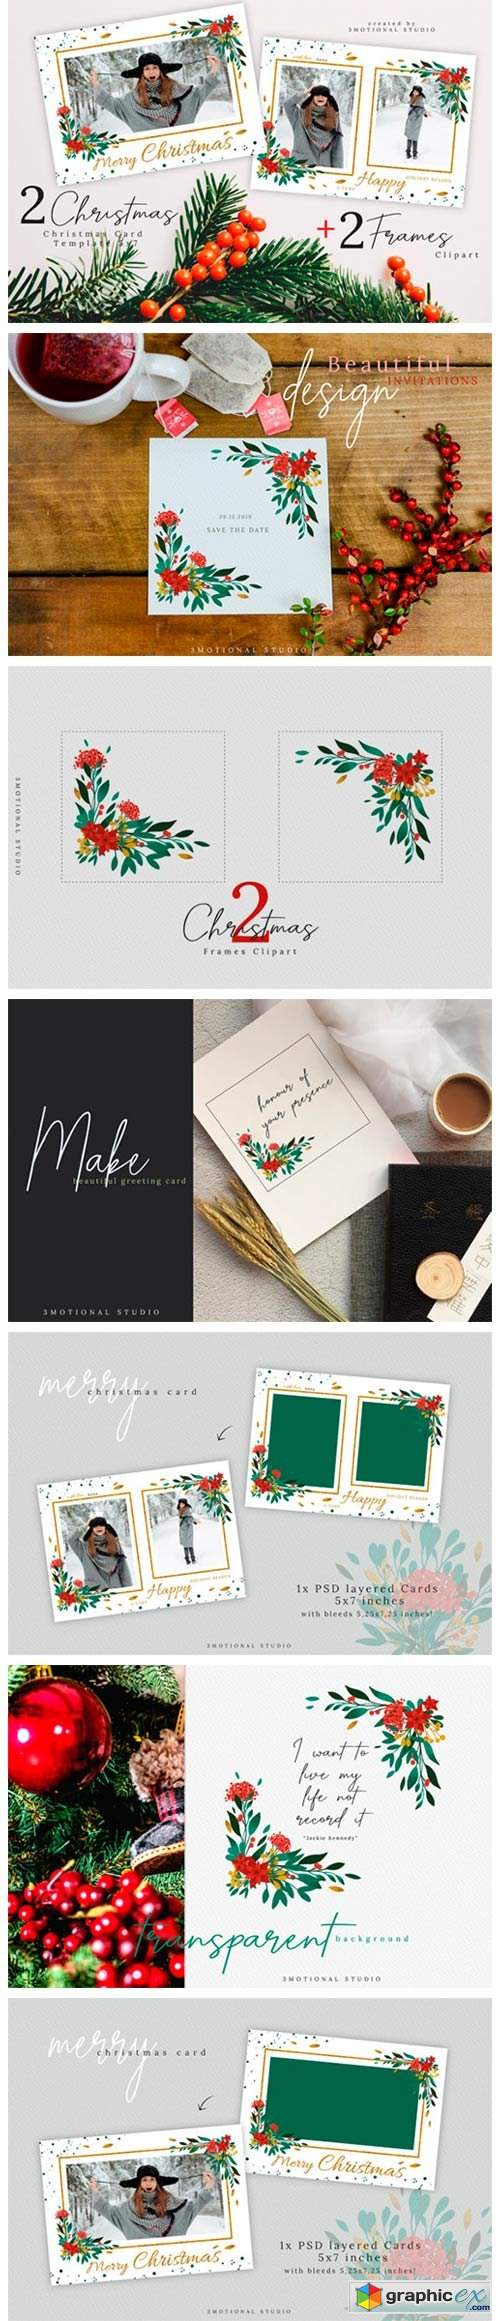 Merry Christmas Card Template 5x7